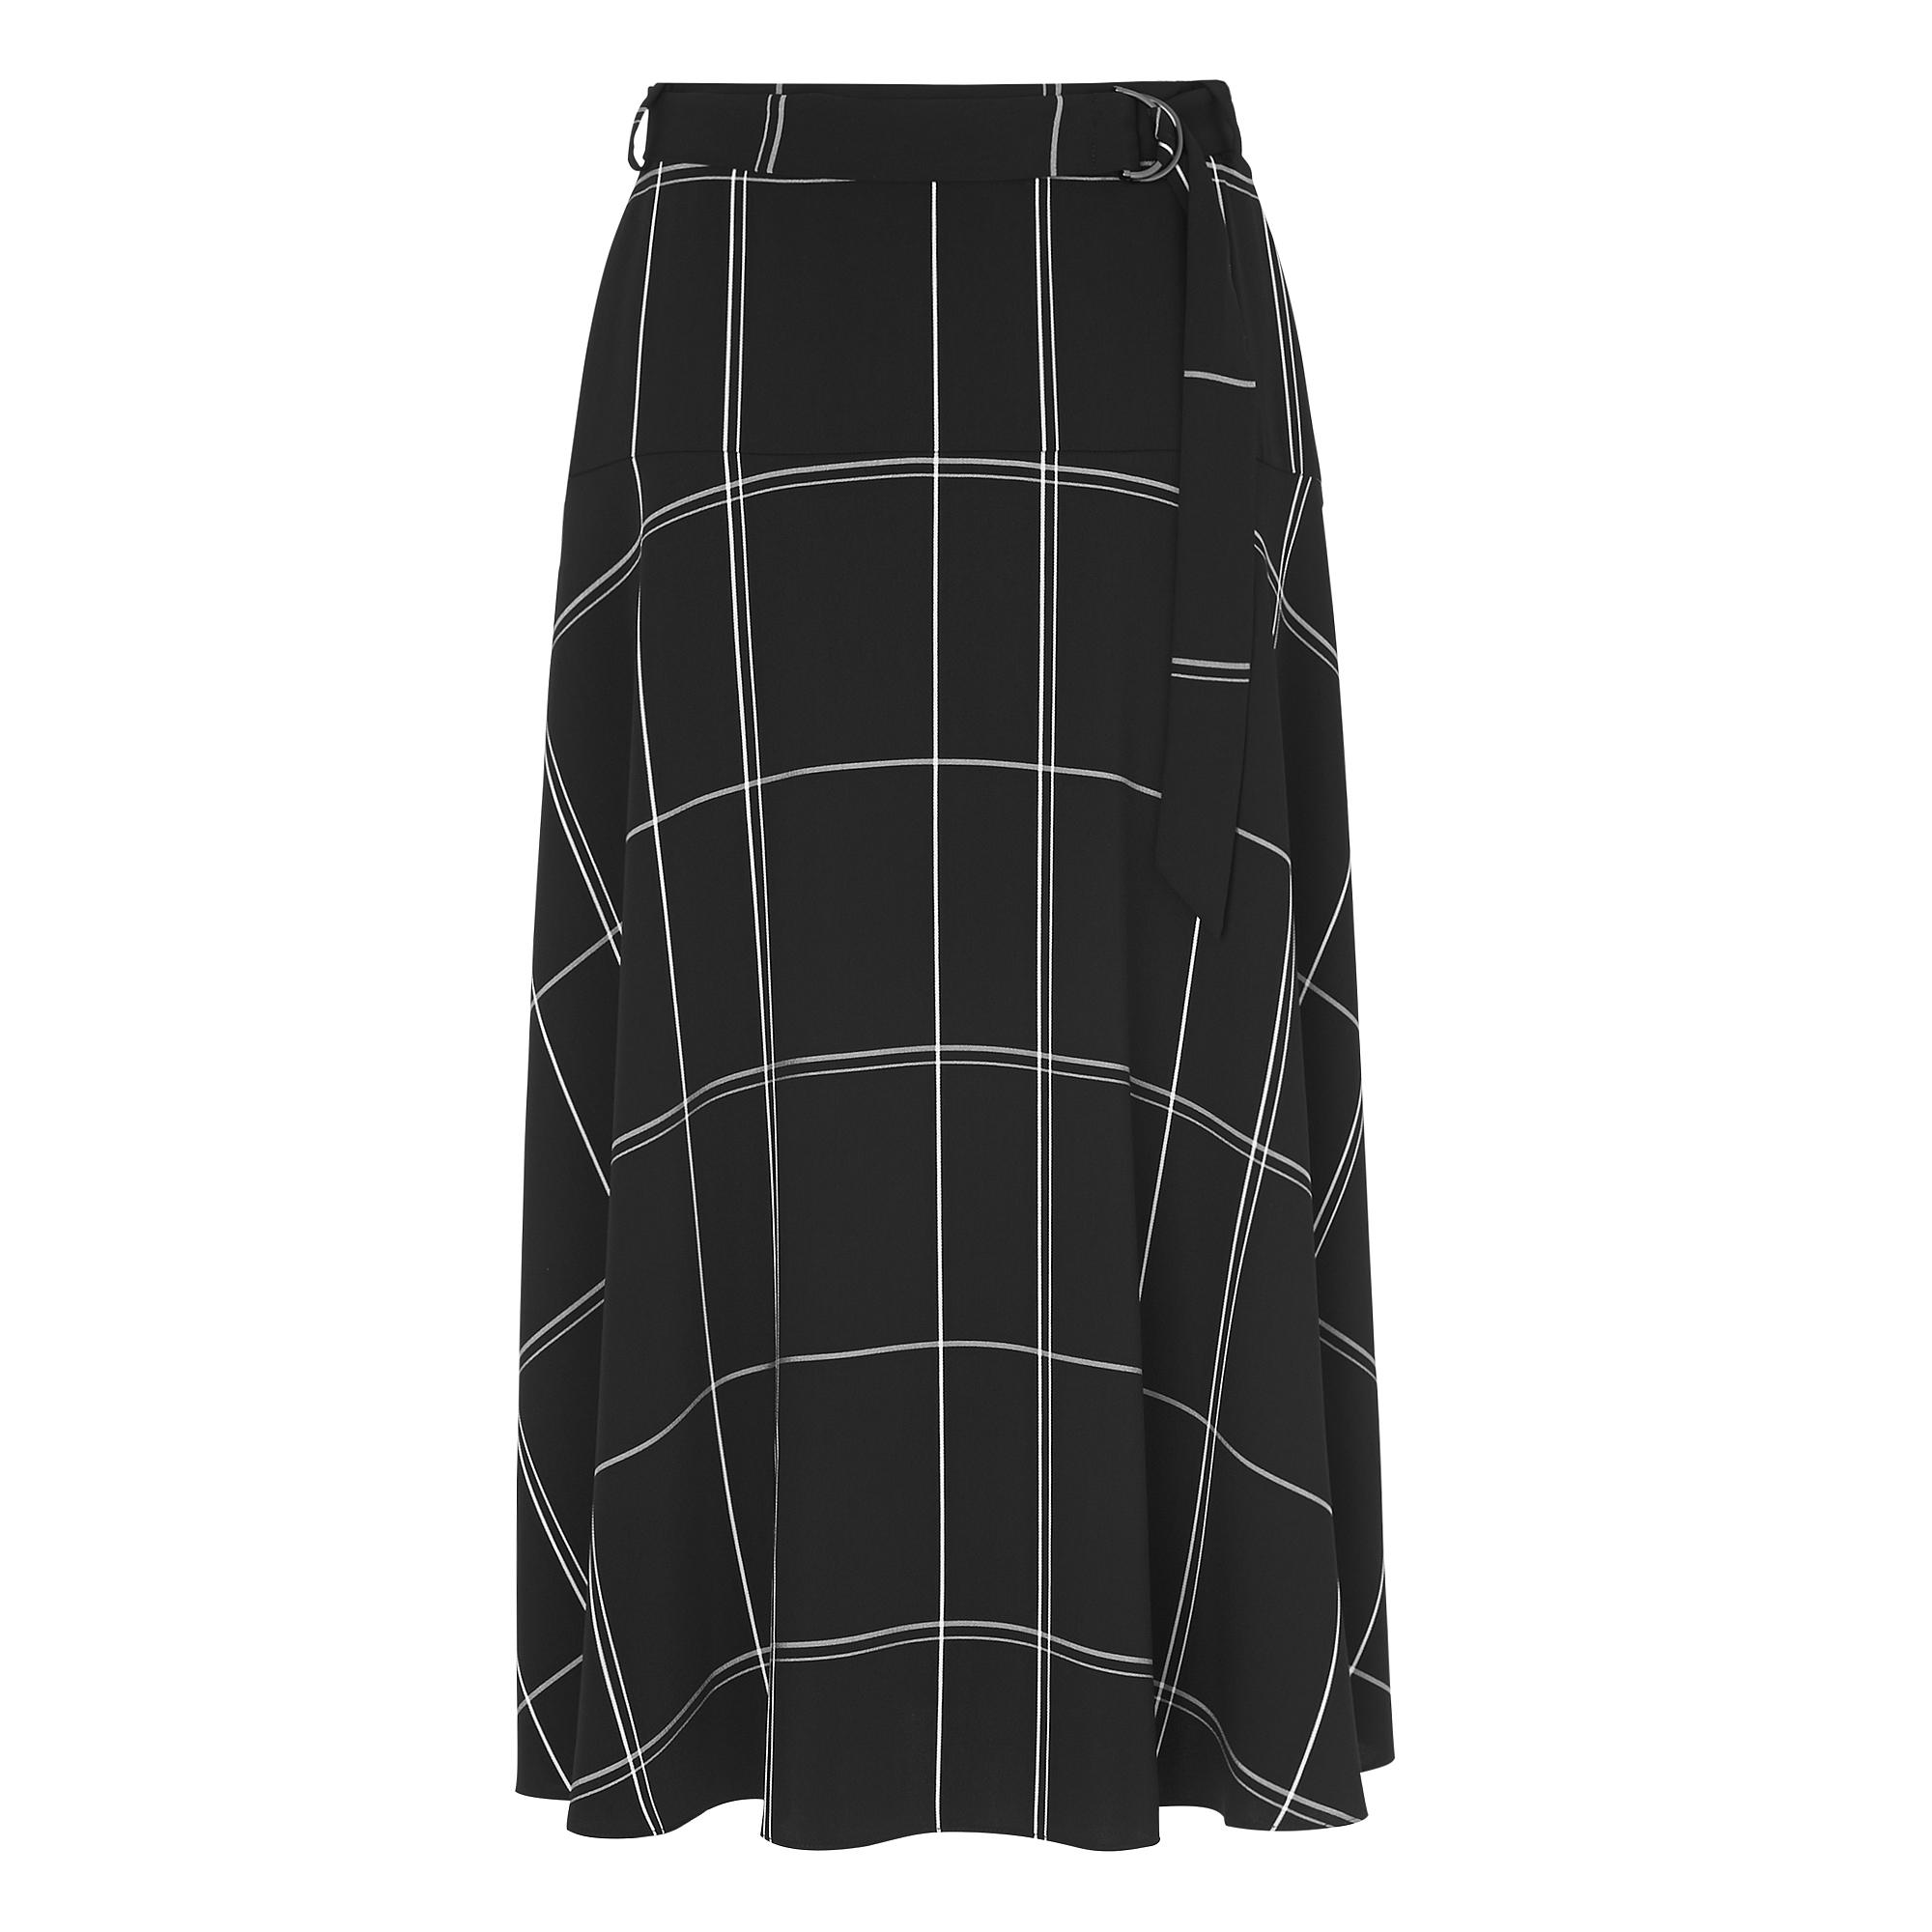 Dinah Black Window Pane Skirt